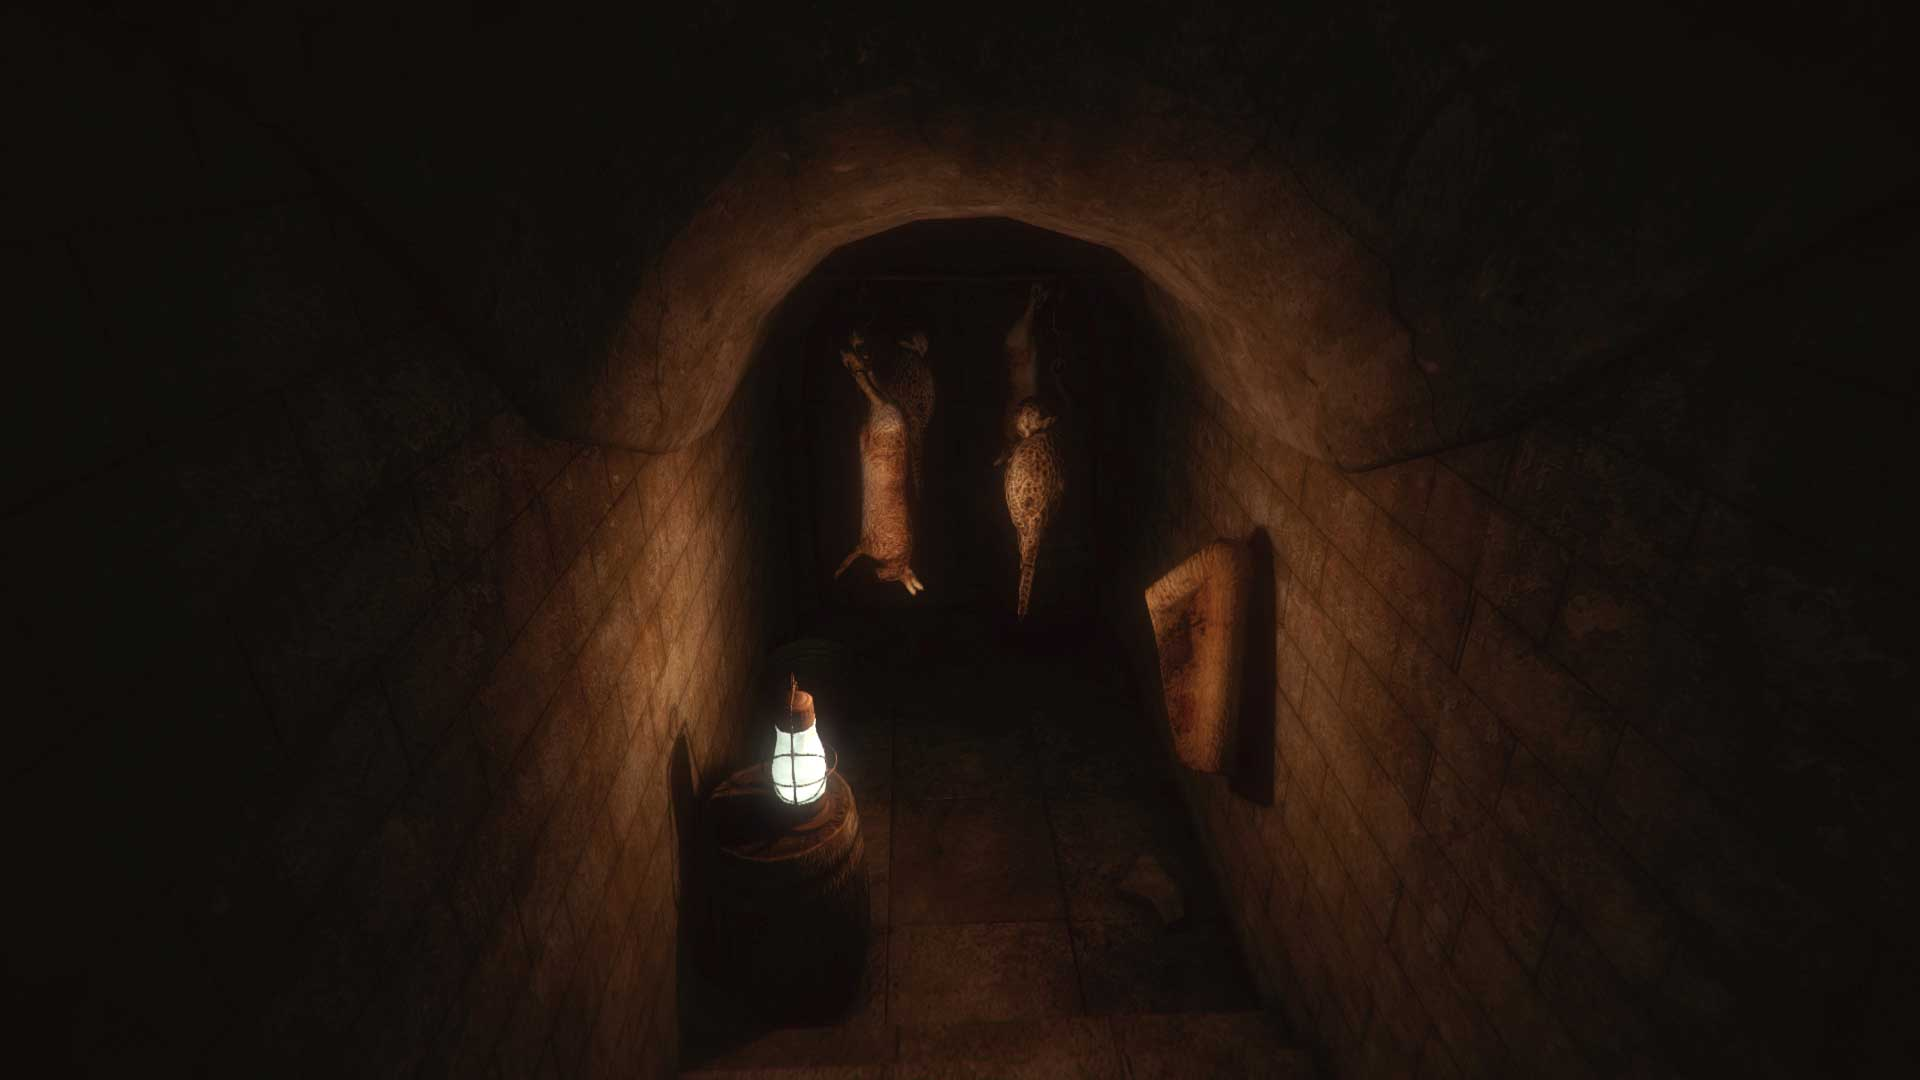 death_in_candlewood_coming_to_linux_mac_windows_pc_late_spring_2015